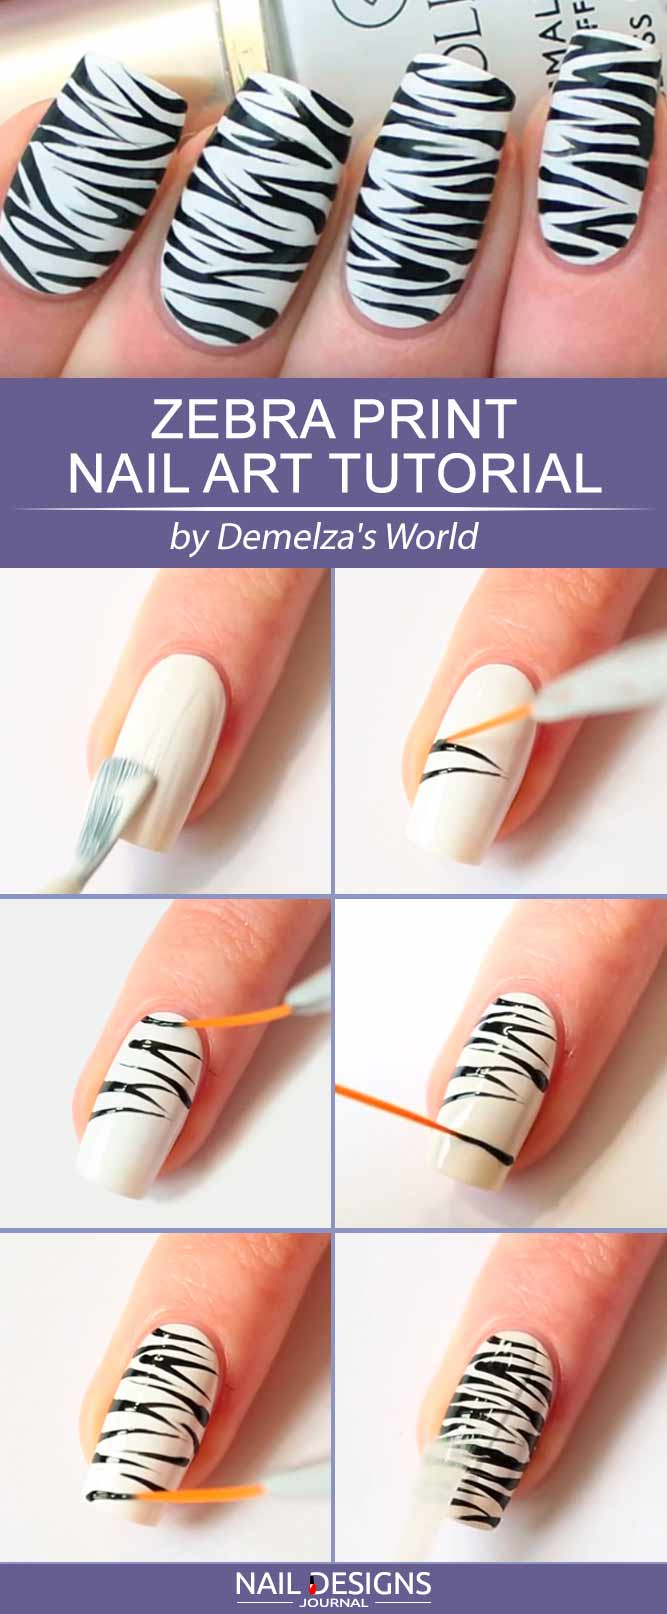 Step By Step Tutorial How To Paint Zebra Print On Your Nails #blackandwhitenails #stripesnails #squarenails #nailtutorial #diynails